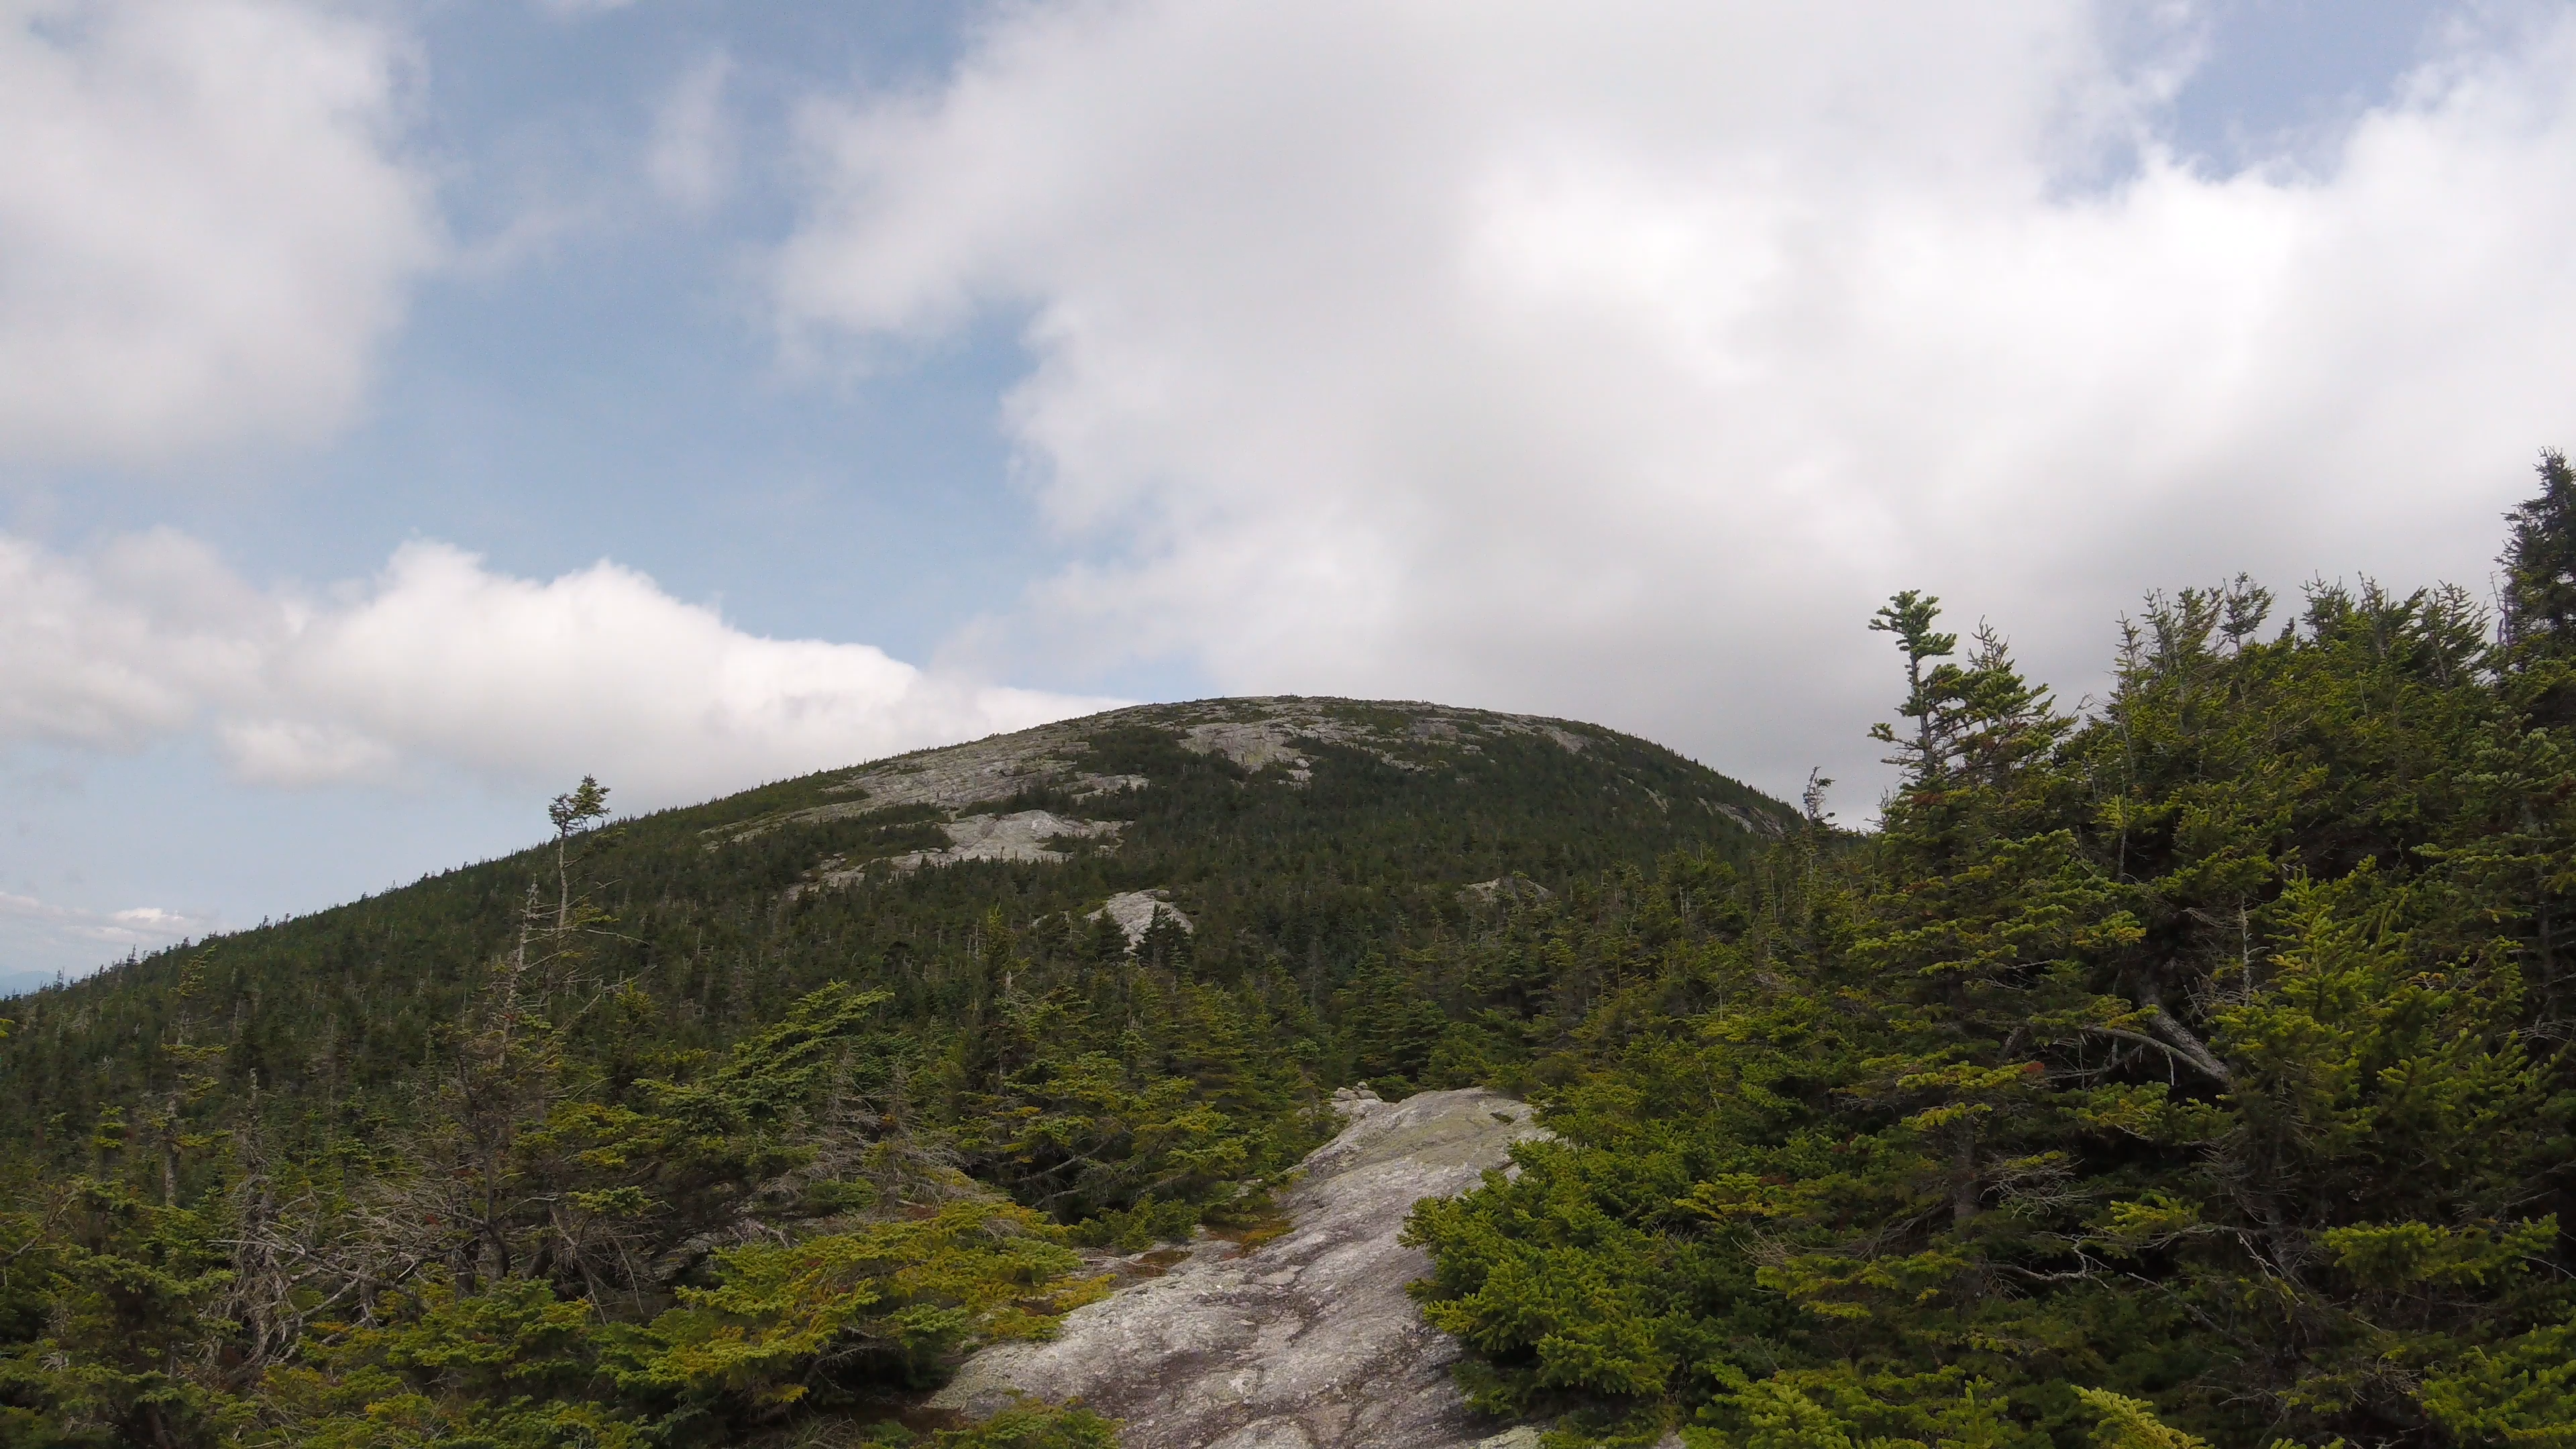 Looking back at East Baldpate 2